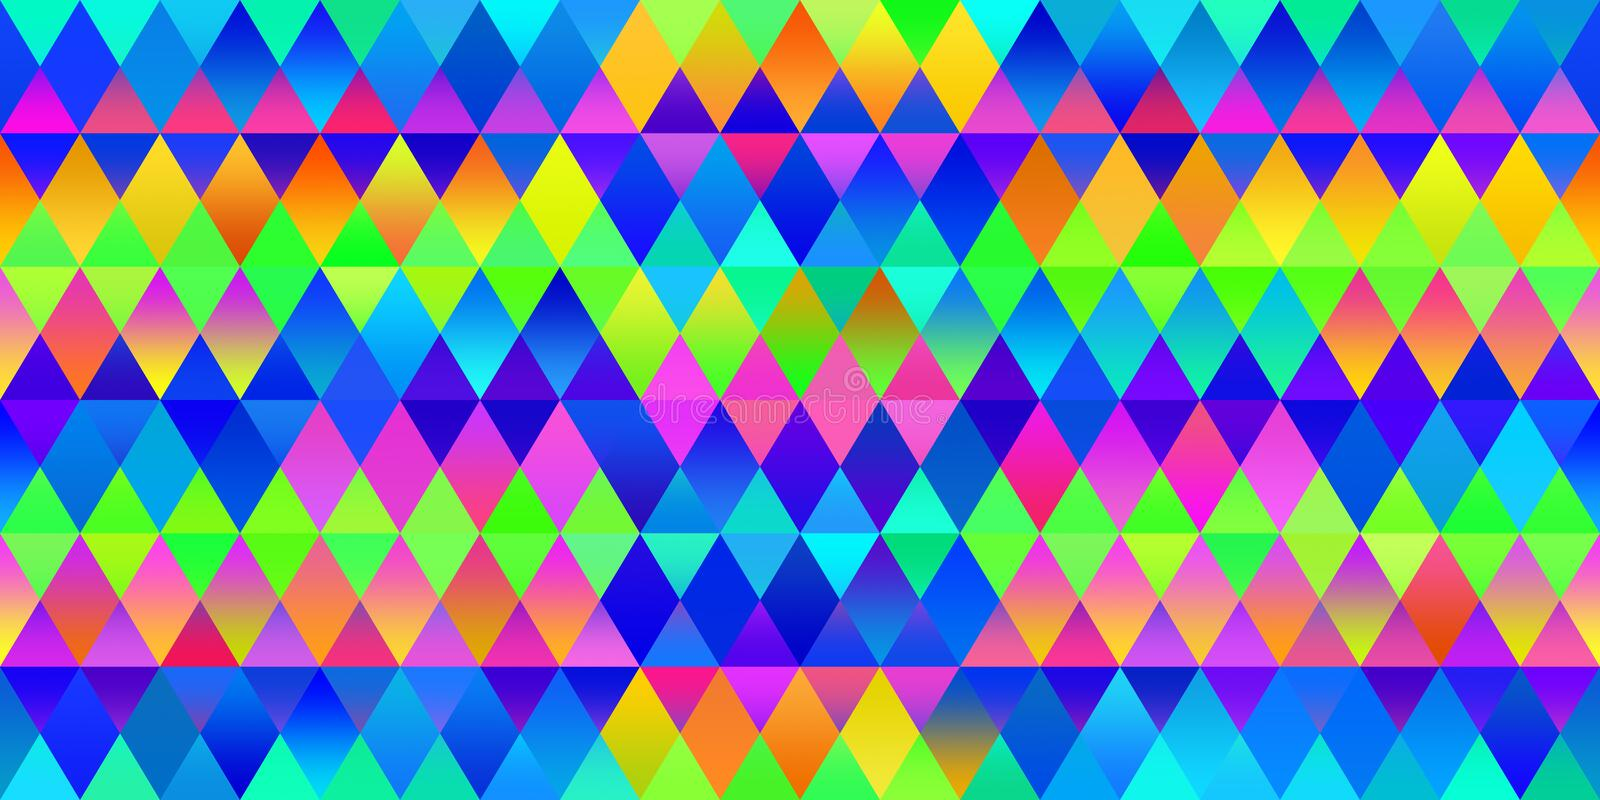 Abstract colorful pattern stock images